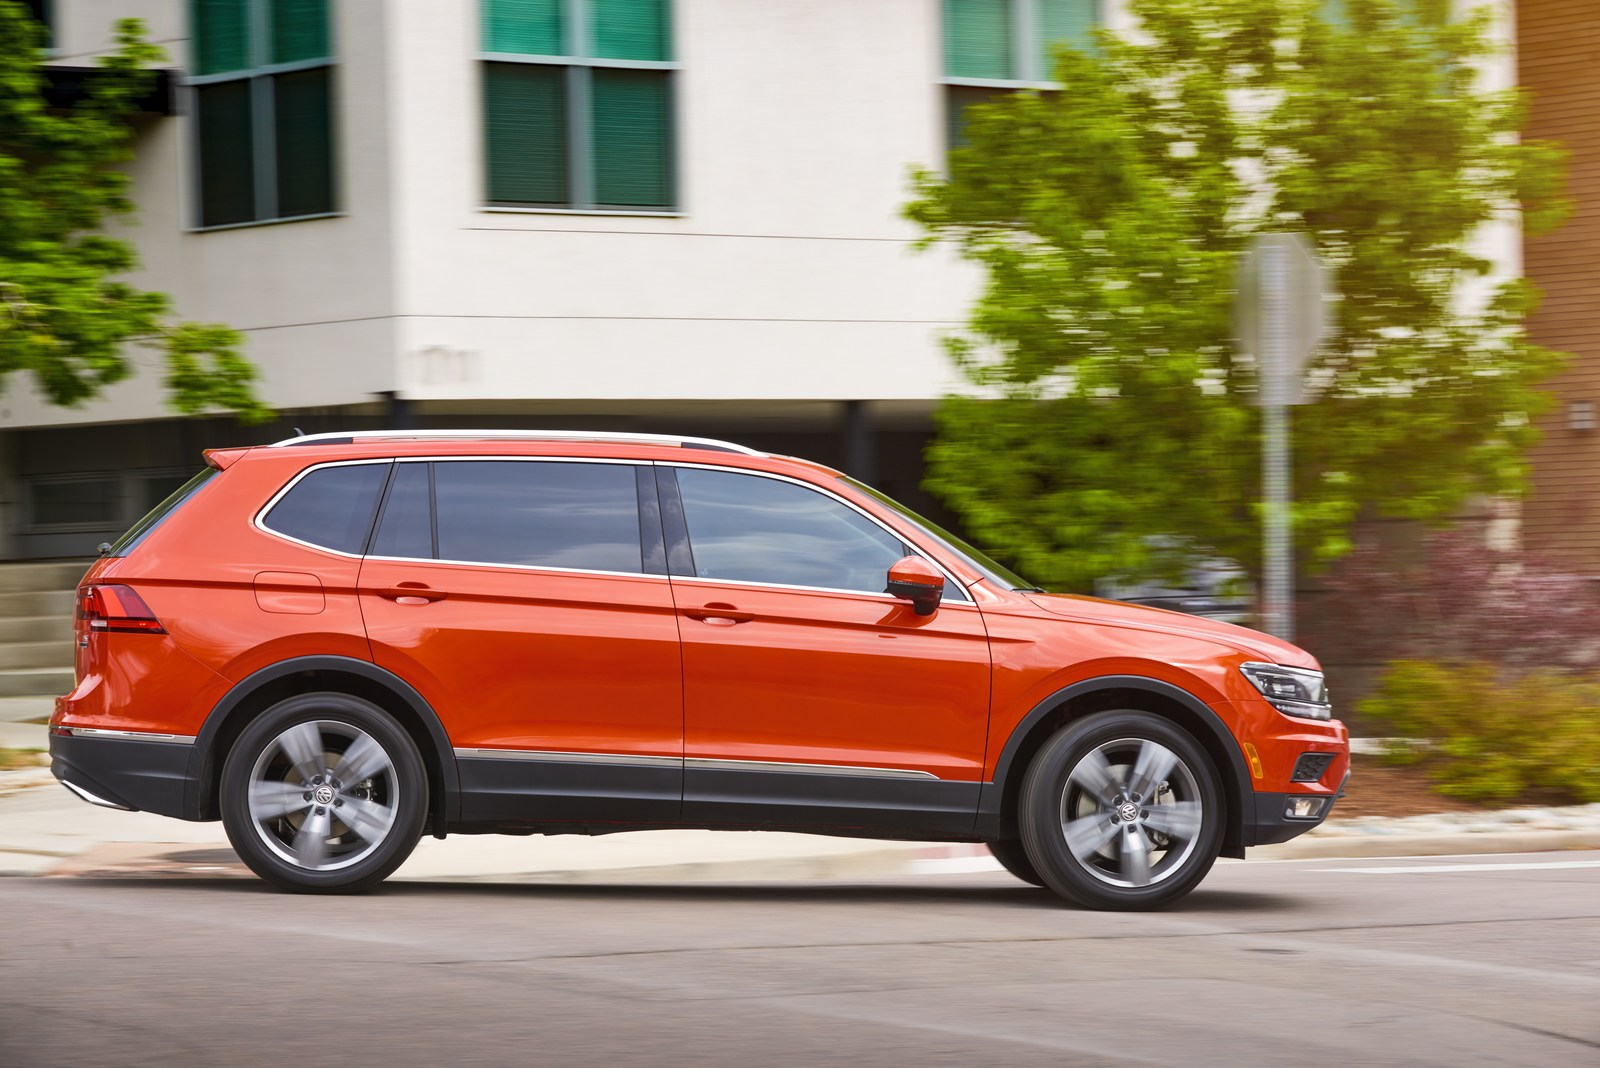 vw slashes tiguan prices by up to 2 180 in the u s carscoops. Black Bedroom Furniture Sets. Home Design Ideas